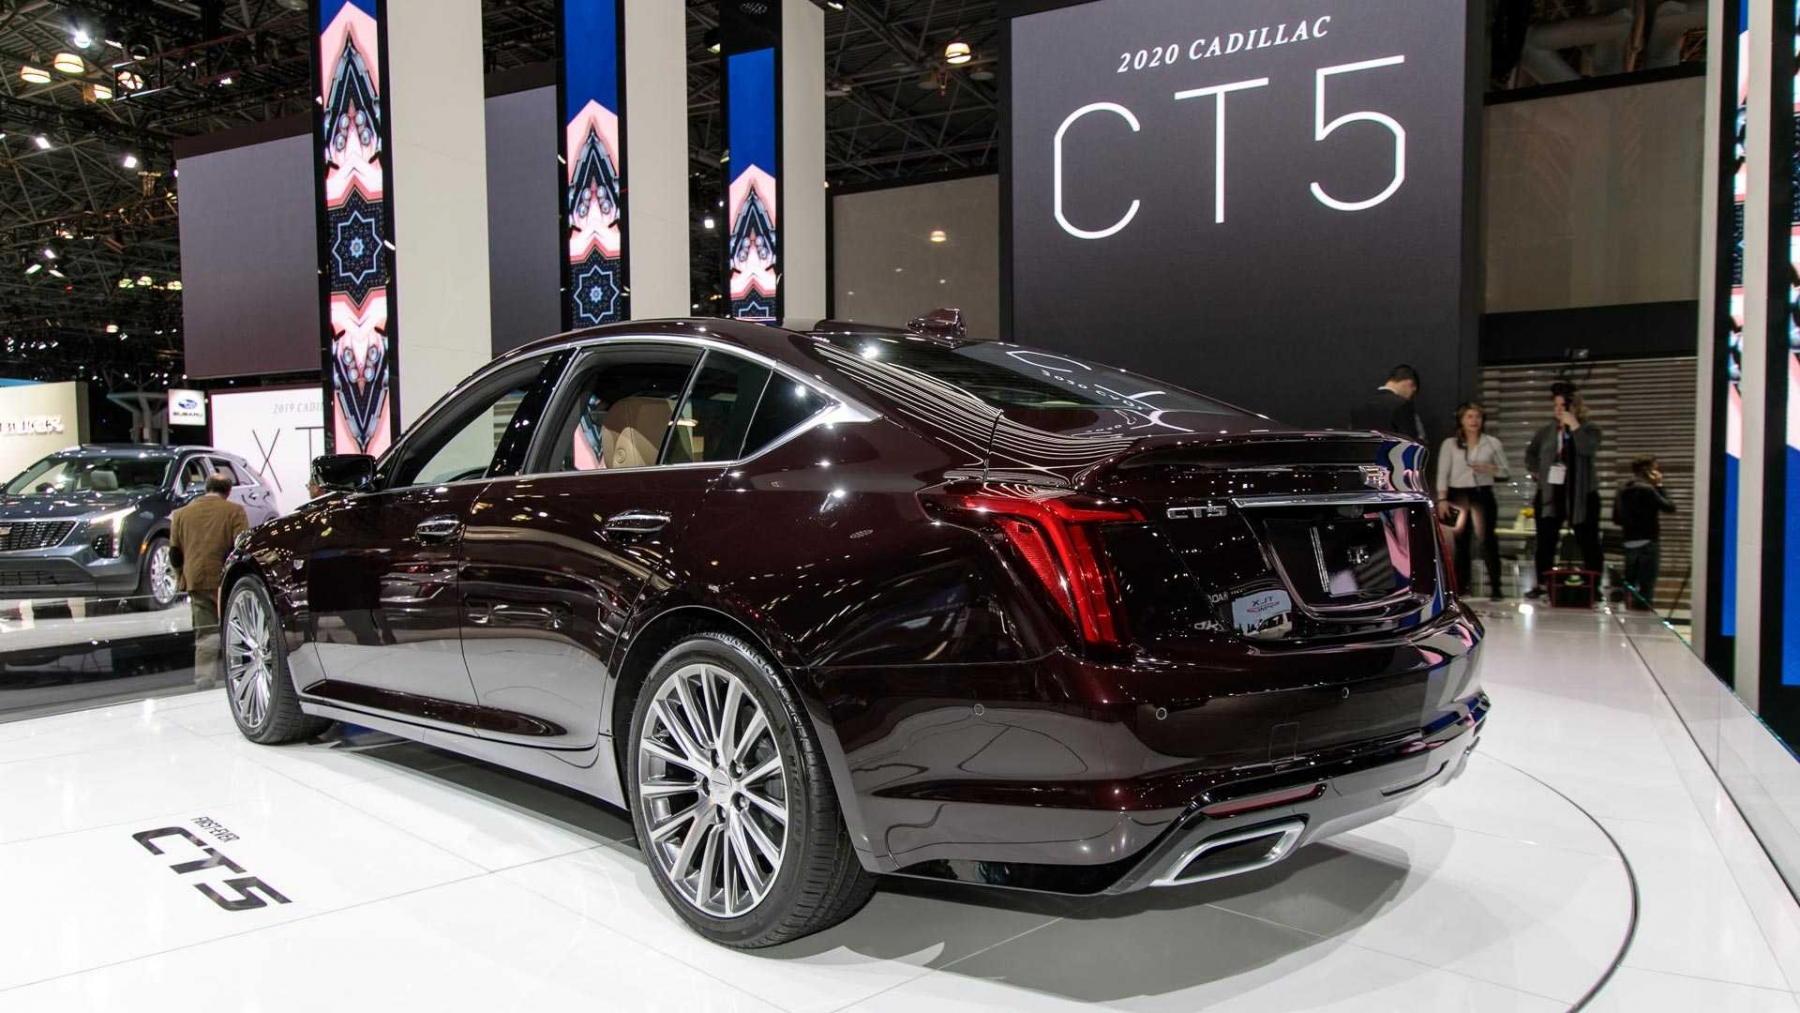 2_2020-cadillac-ct5-live-images